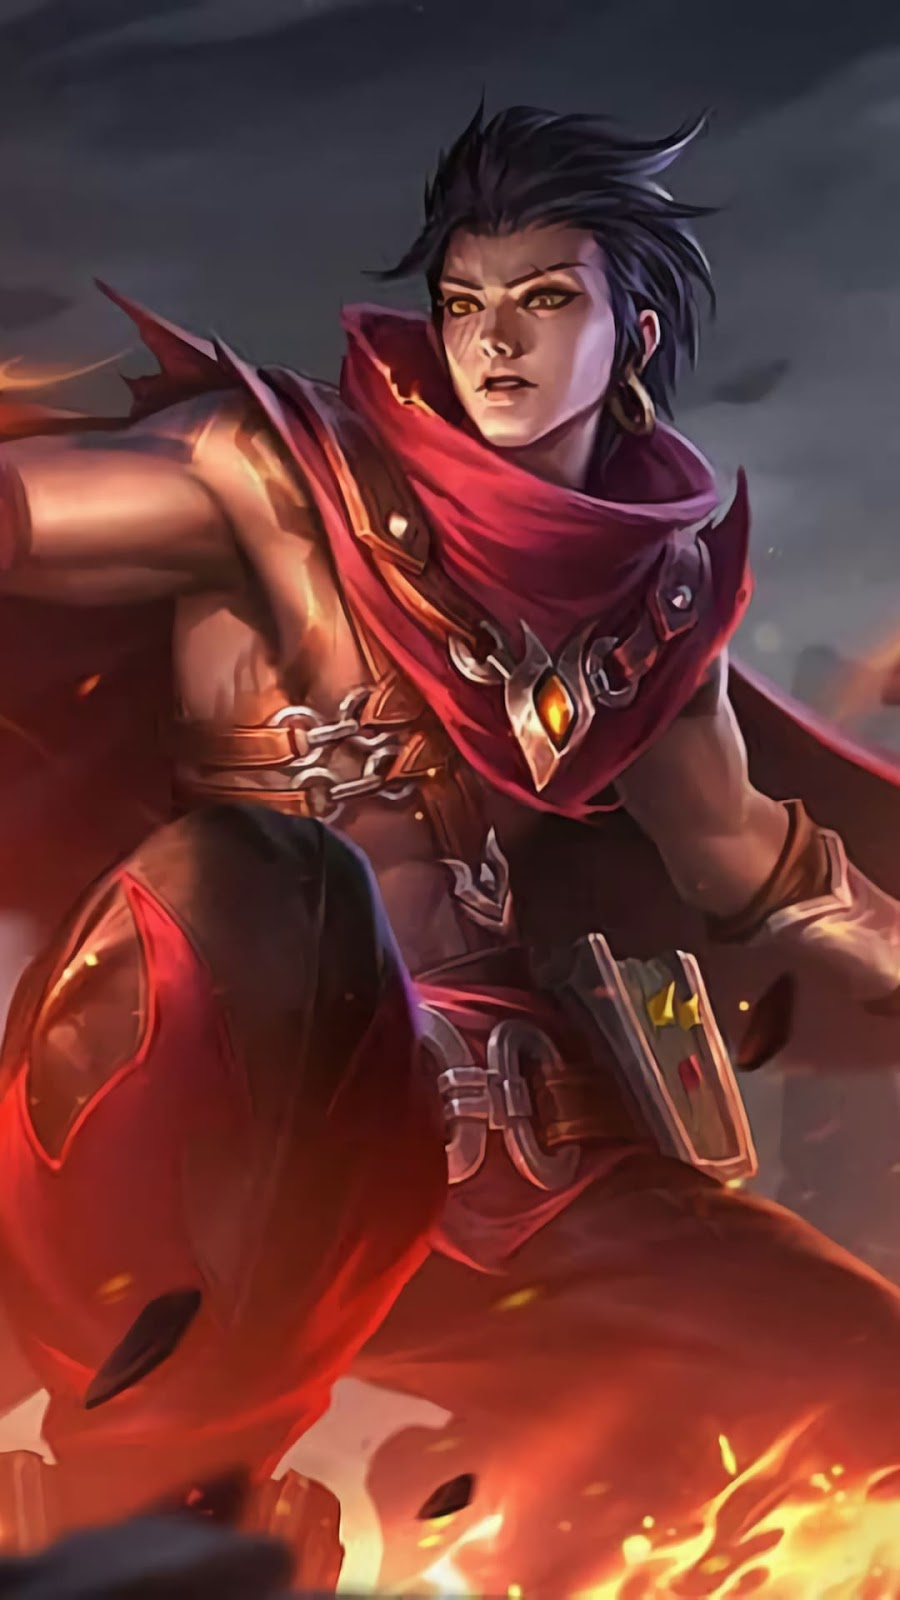 Wallpaper Valir Pale Flames Skin Mobile Legends HD for Android and iOS